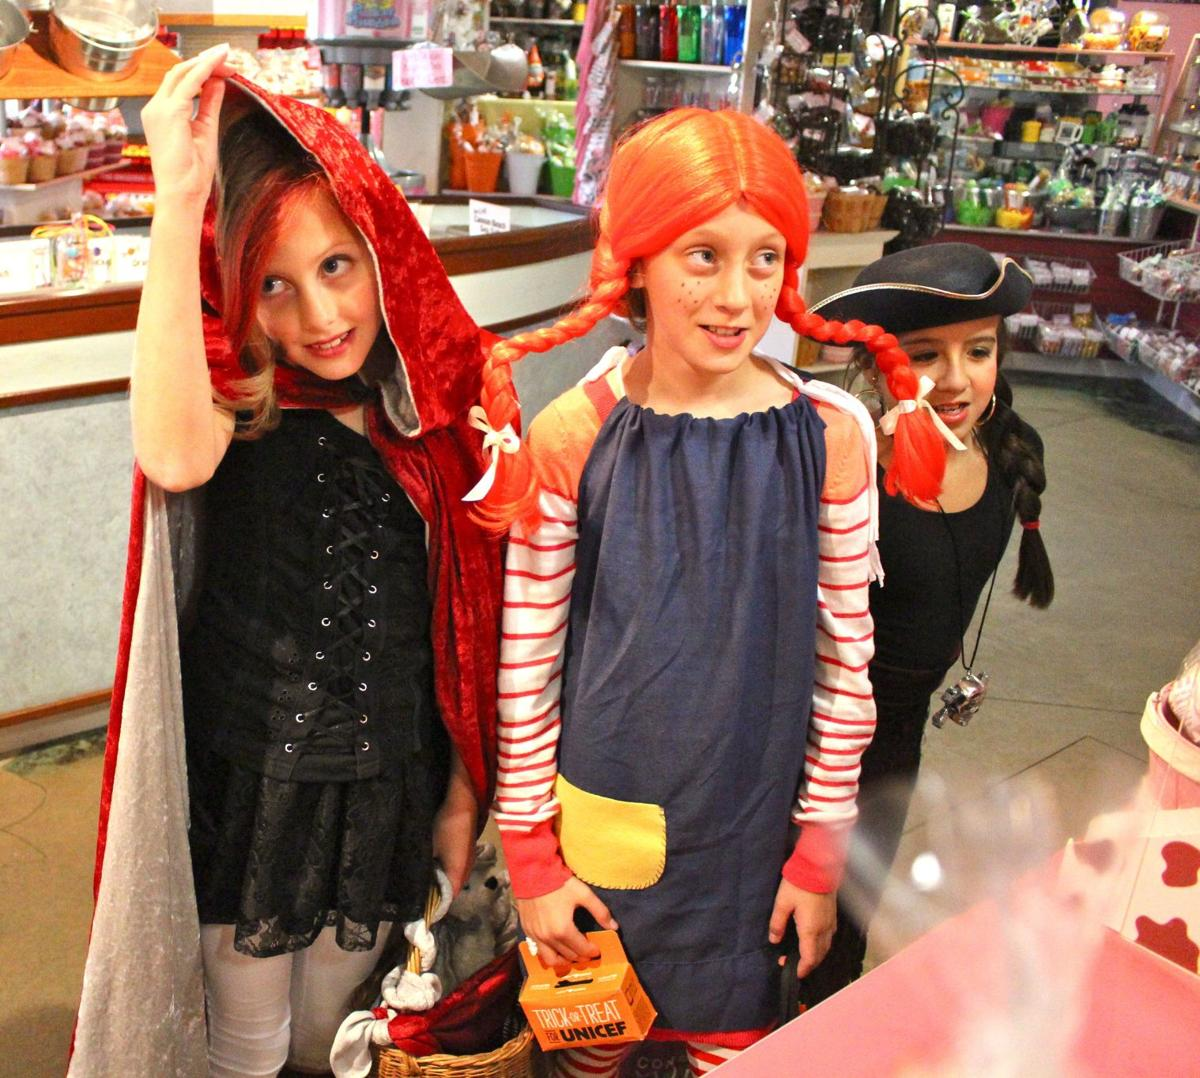 Trick-or-treaters flaunt their colorful costumes in downtown Cannon Beach